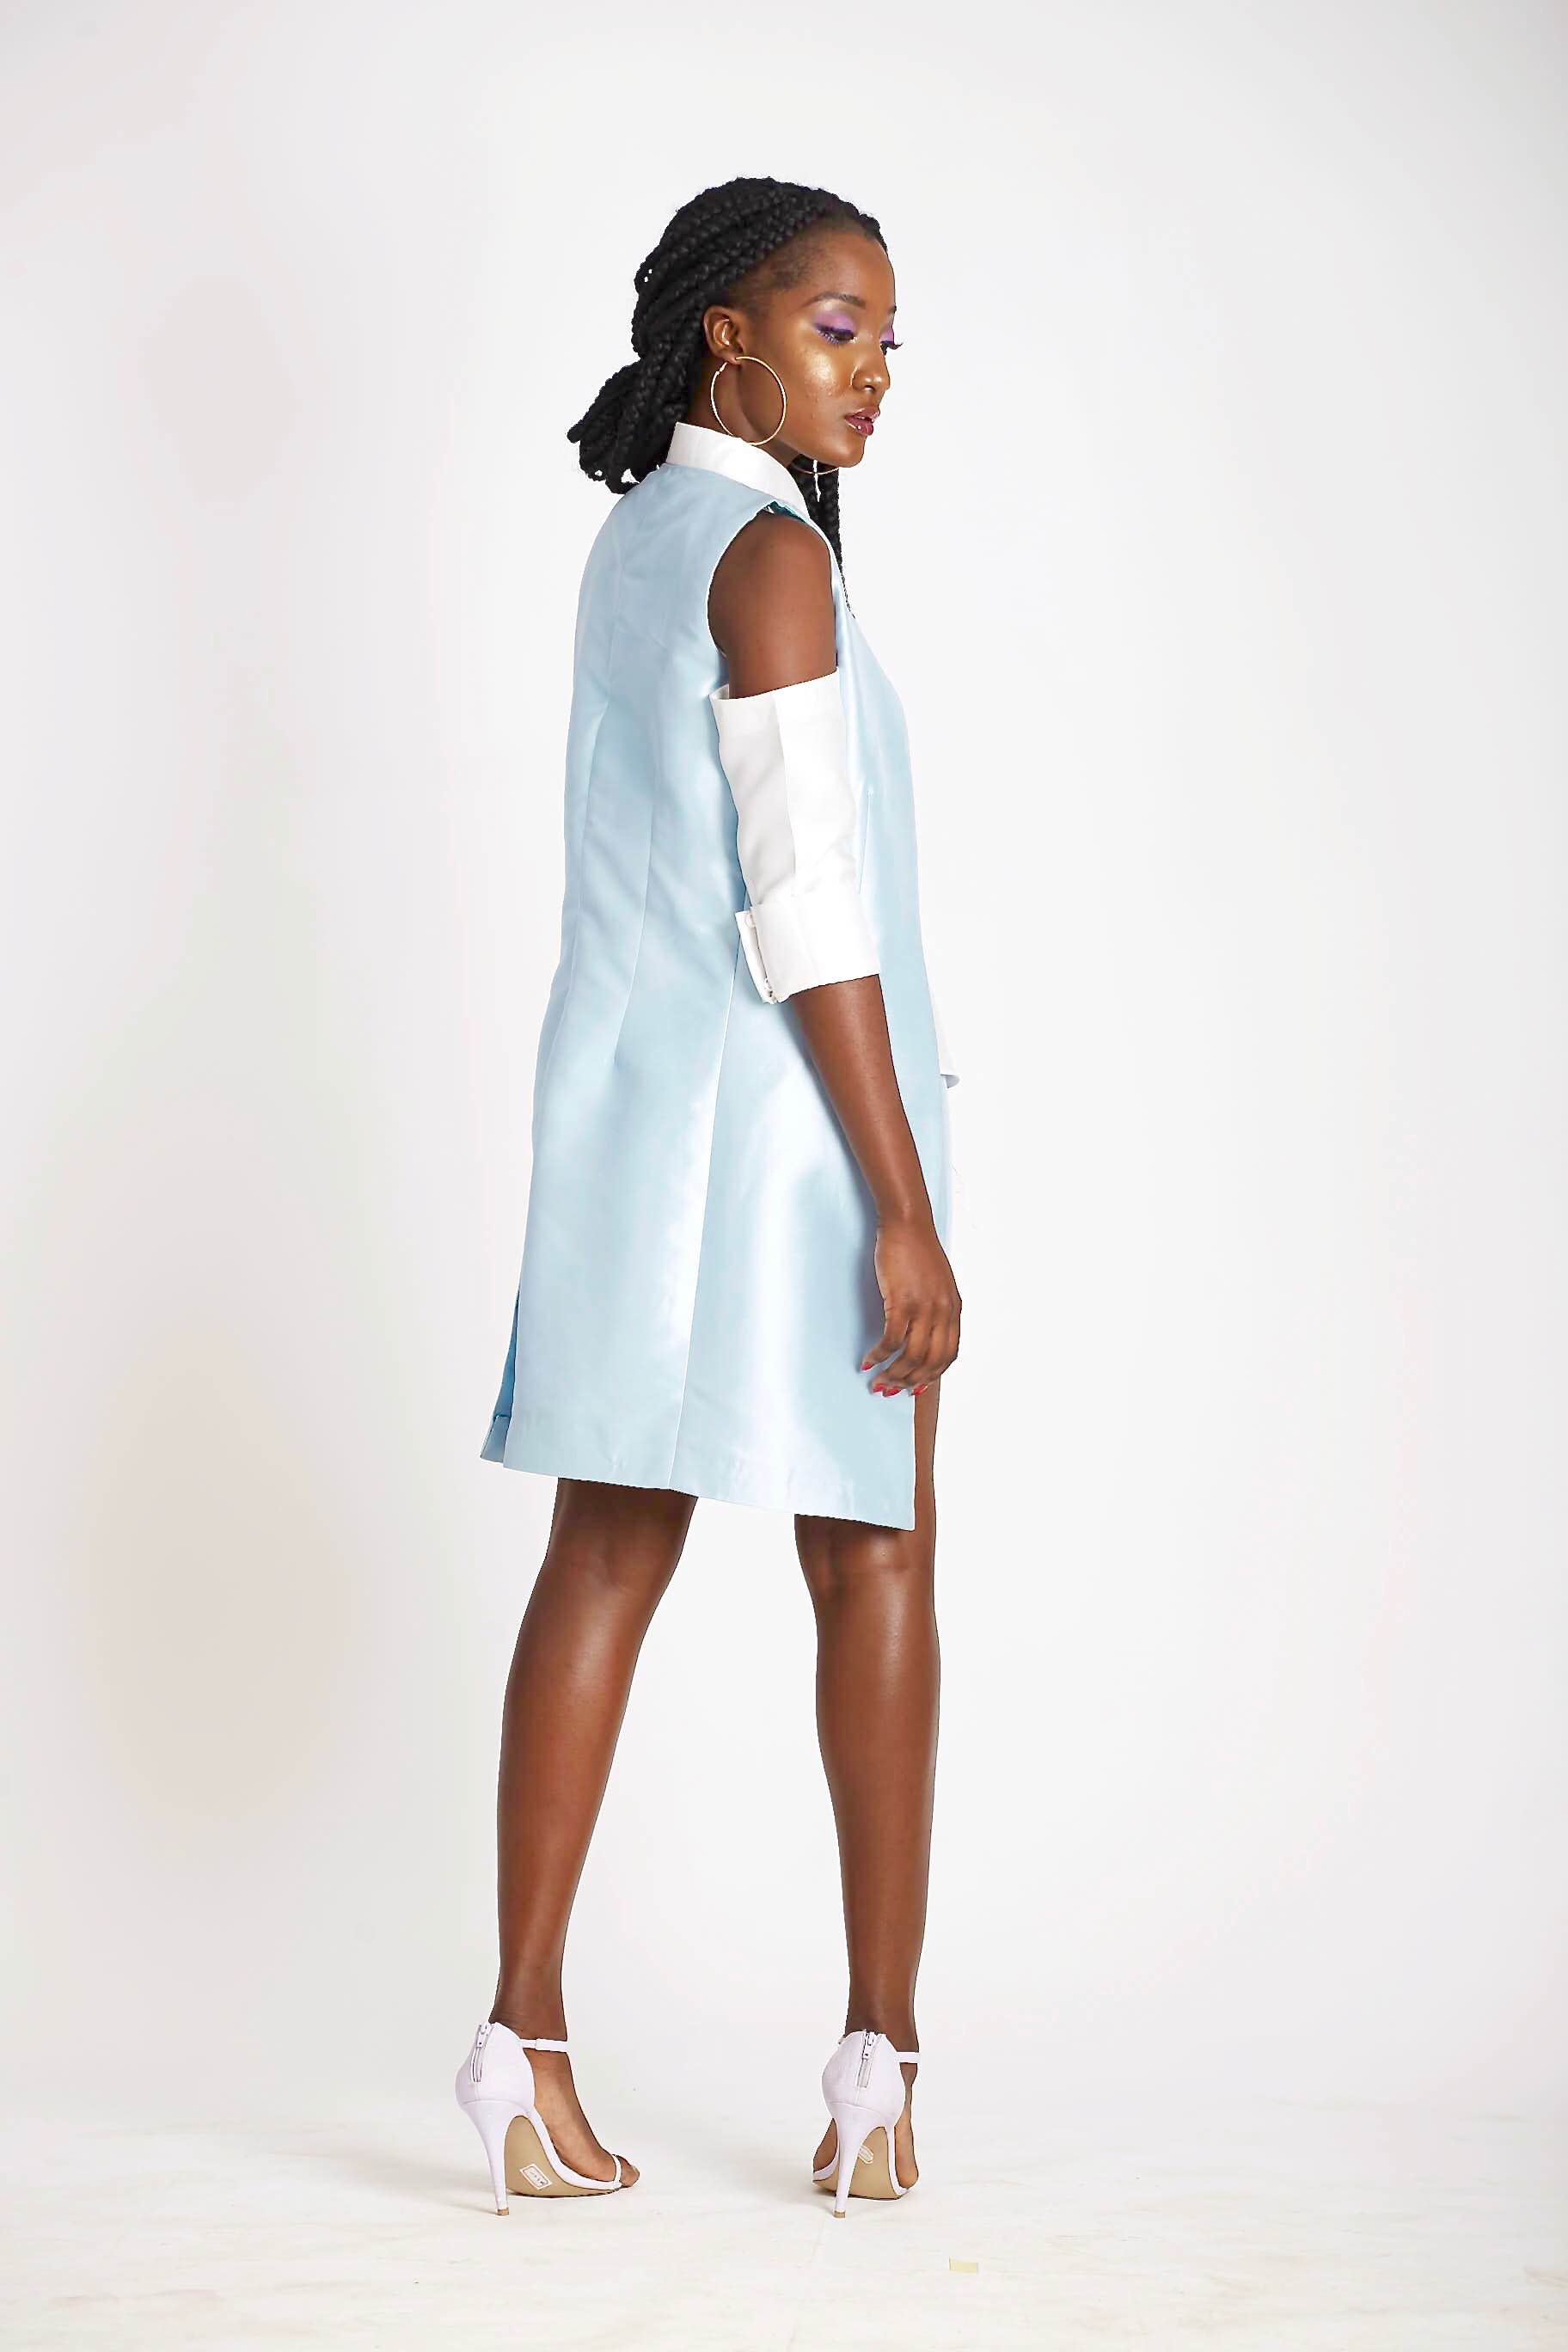 Imad Eduso - BN Style - Collection Lookbook - BellaNaija.com 011